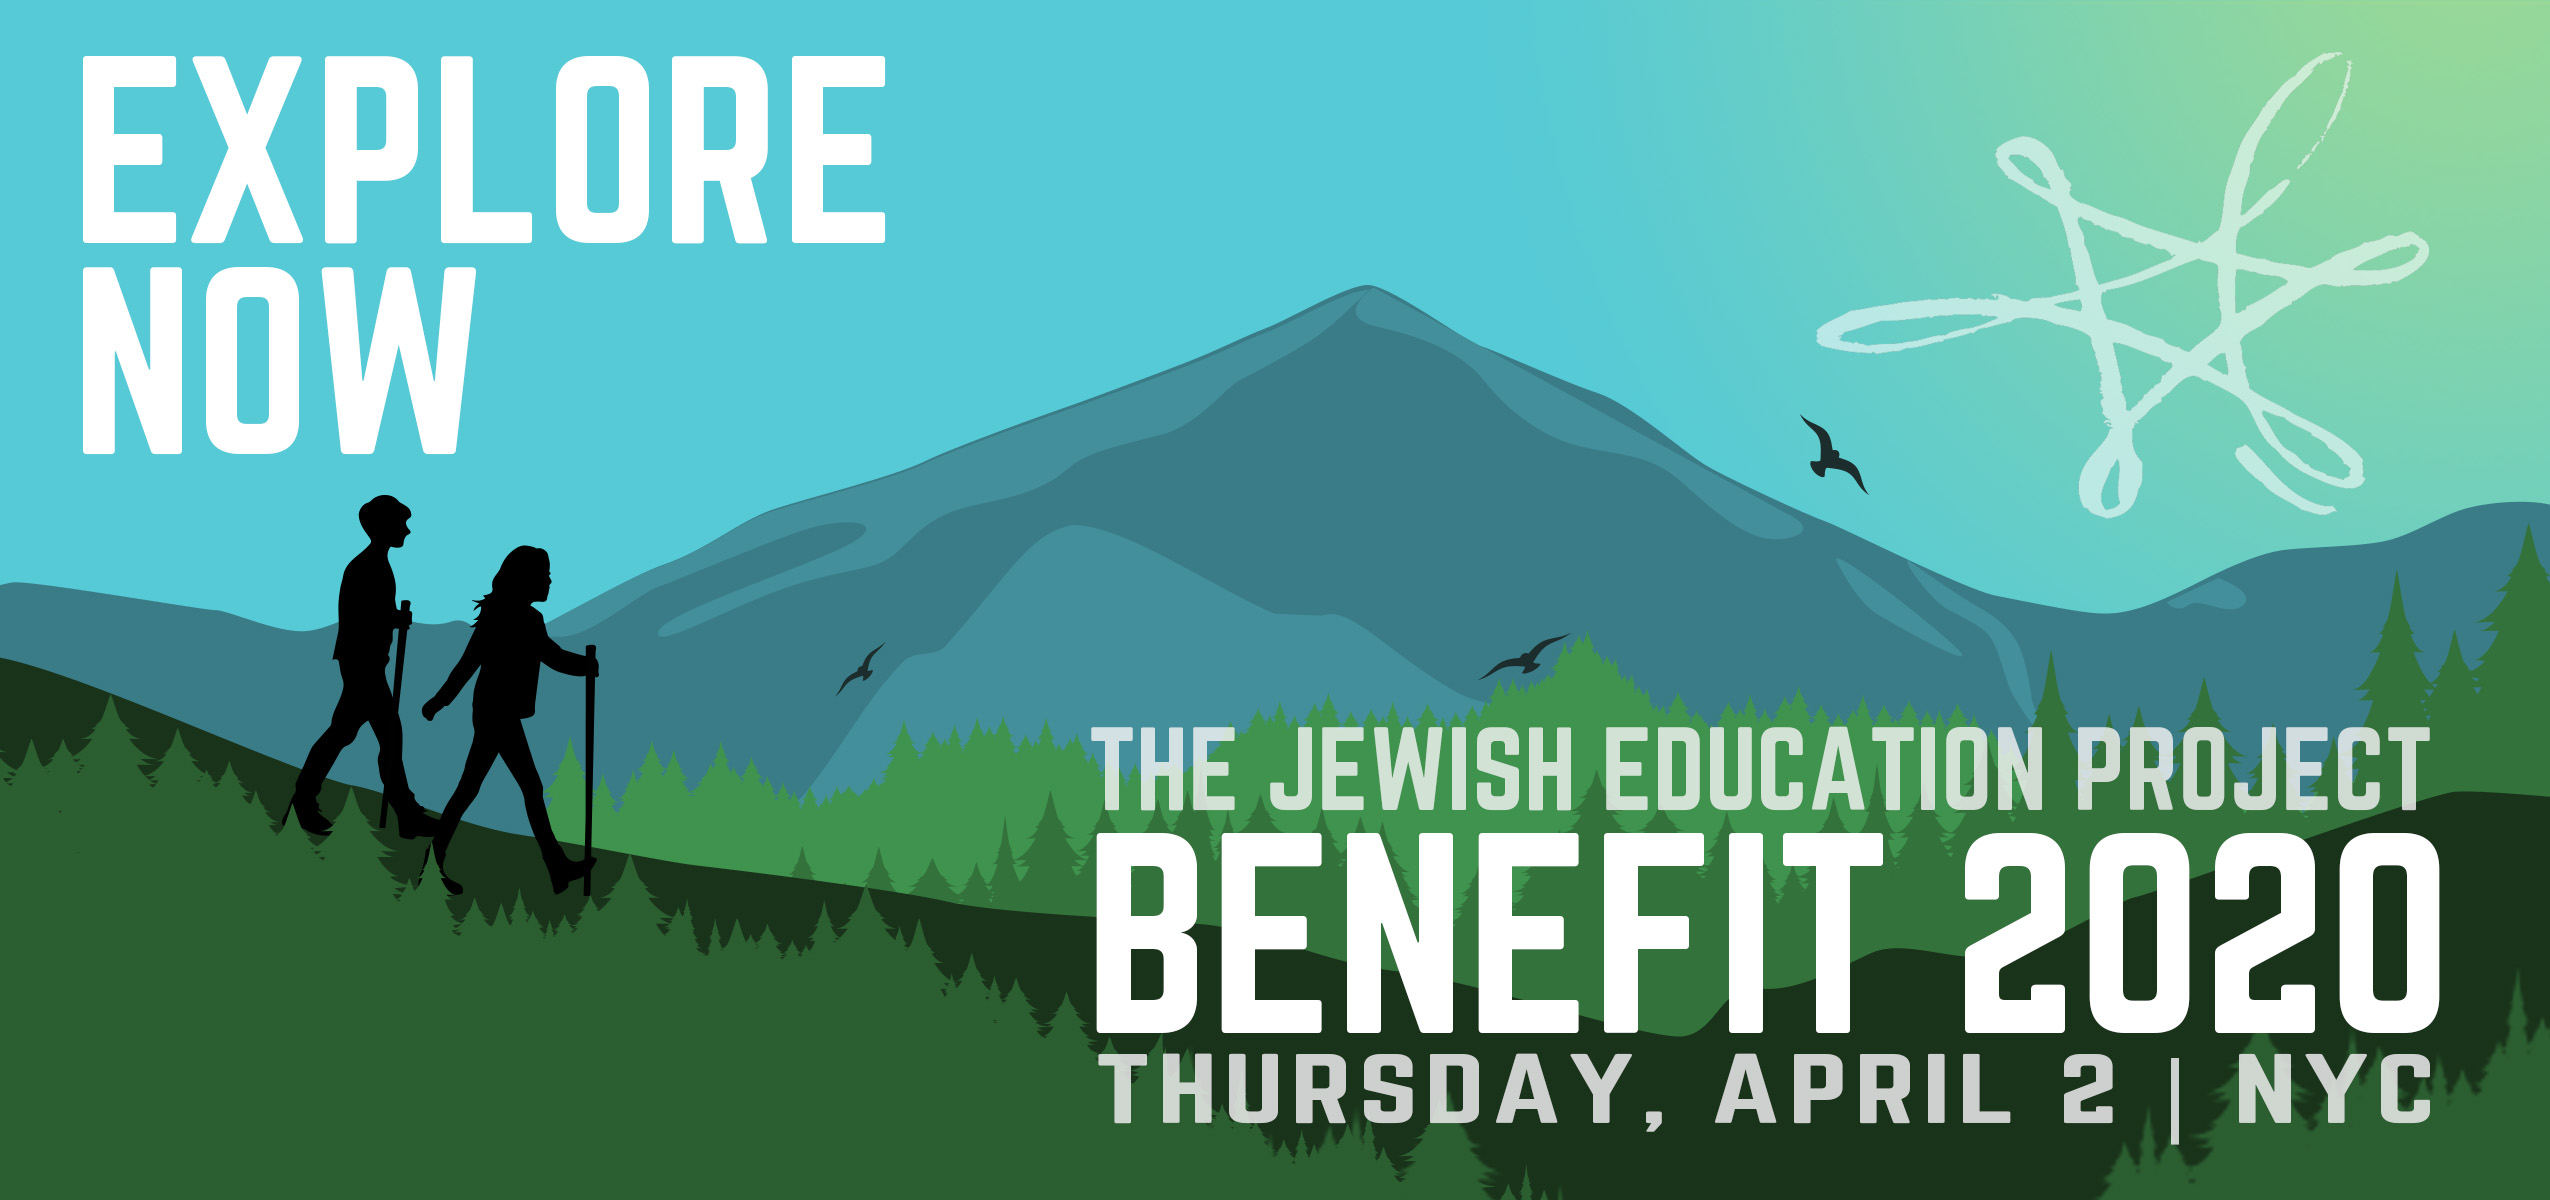 The Jewish Education Project Benefit 2020 is April 2nd in New York City.